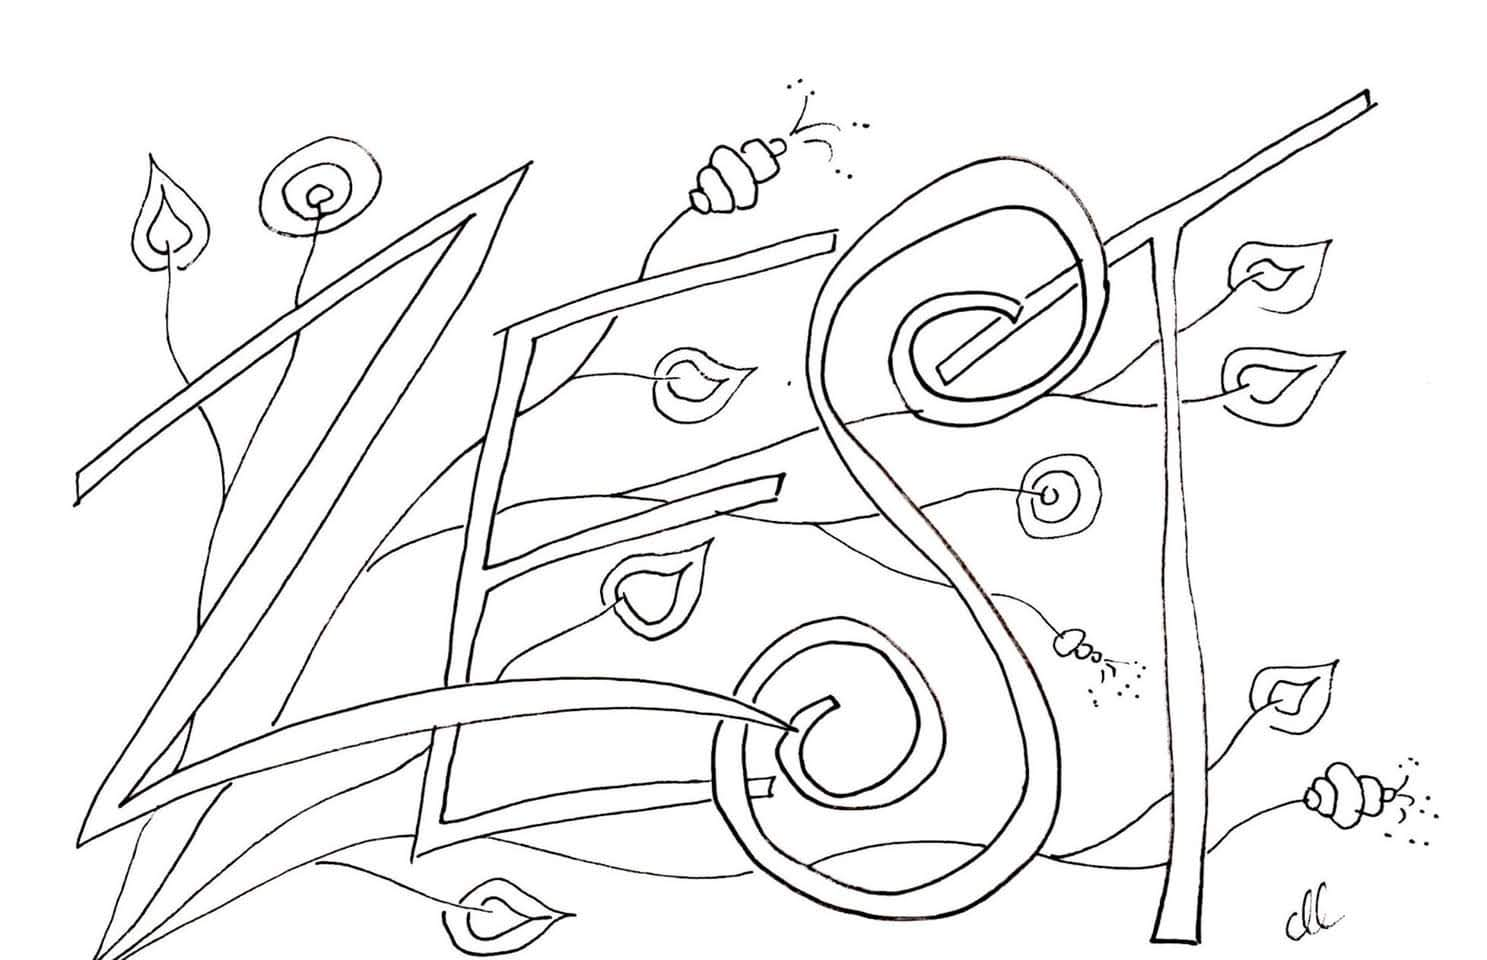 Meditative Coloring Pages - RYSEC